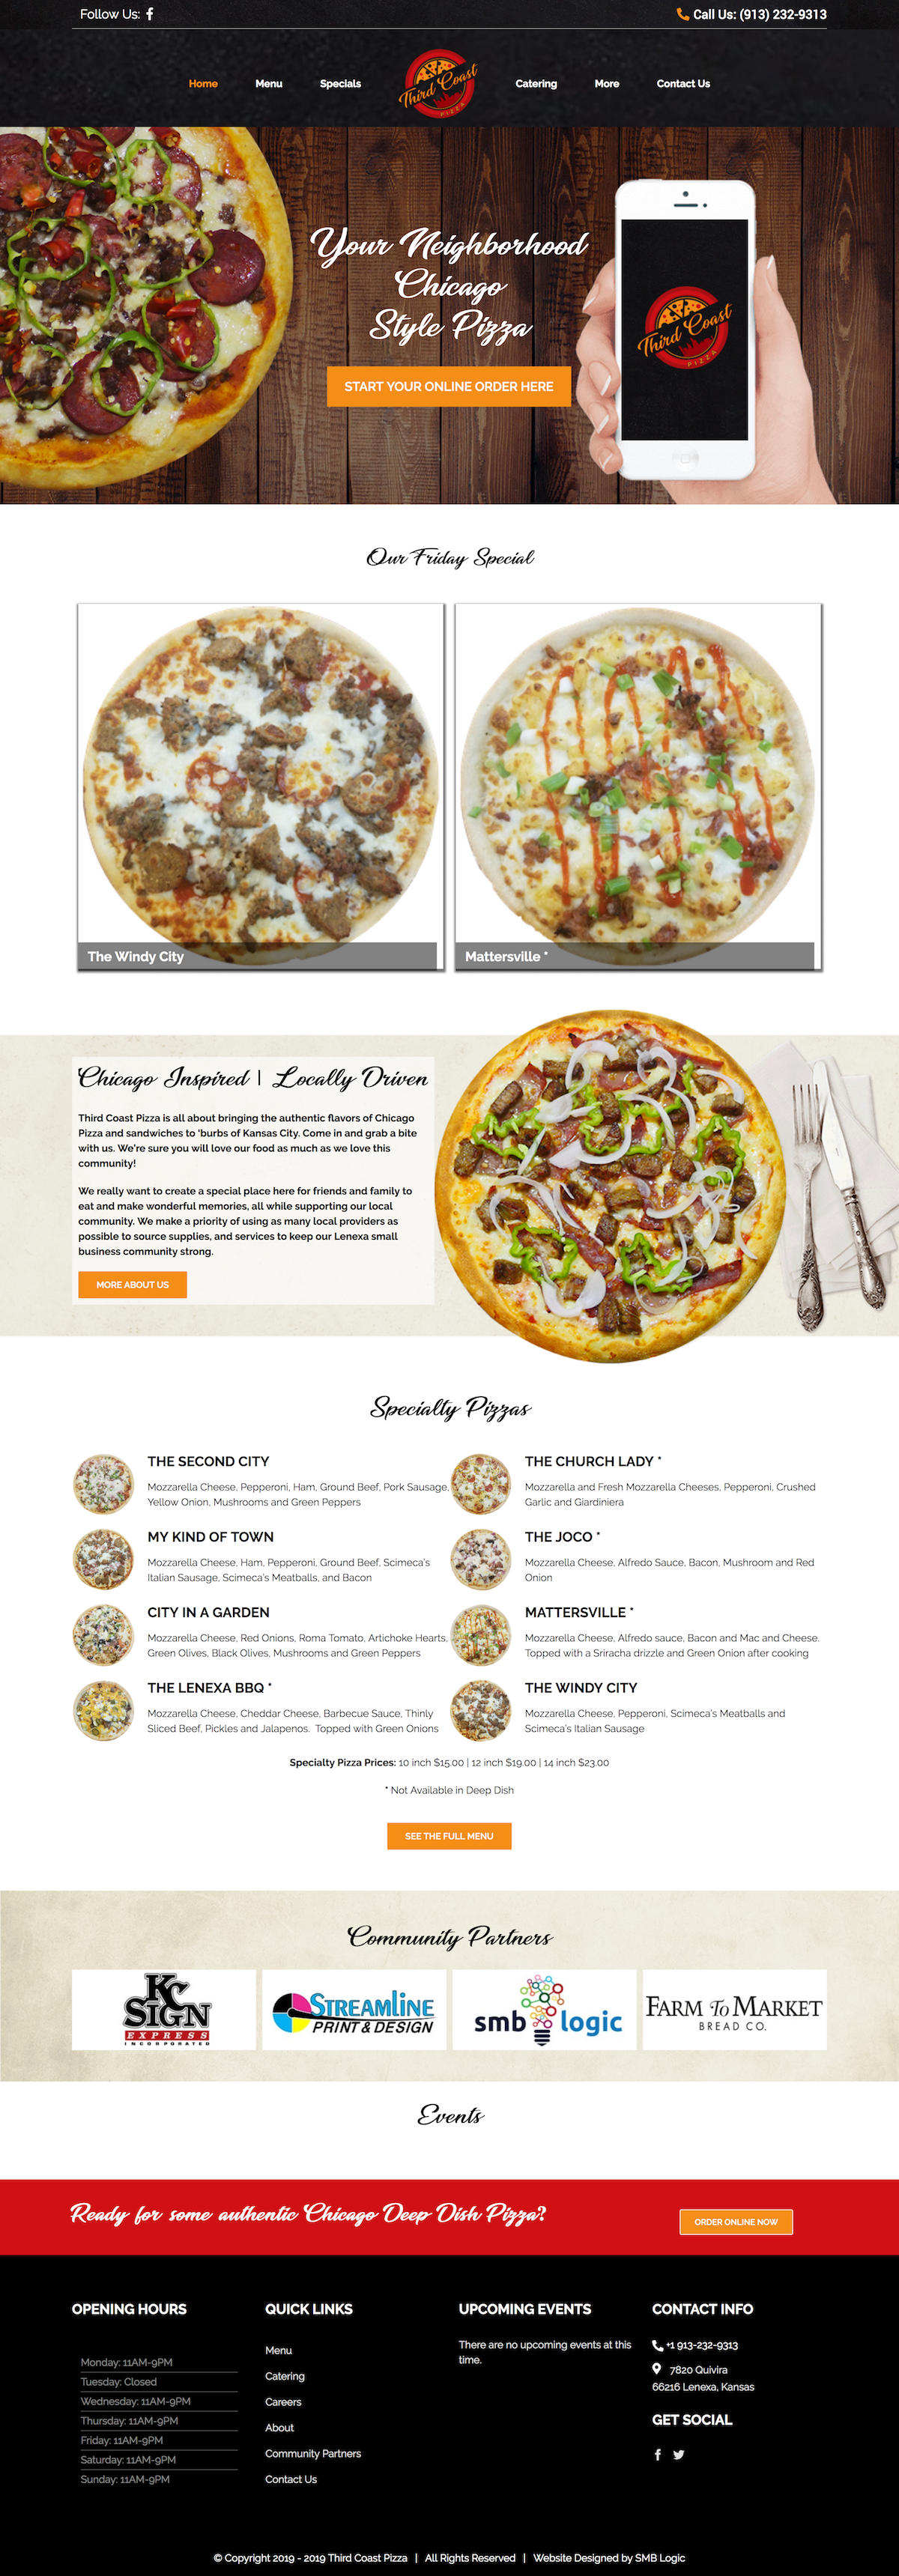 Home Page Screengrab of The Website SMB Logic Designed for Third Coast Pizza